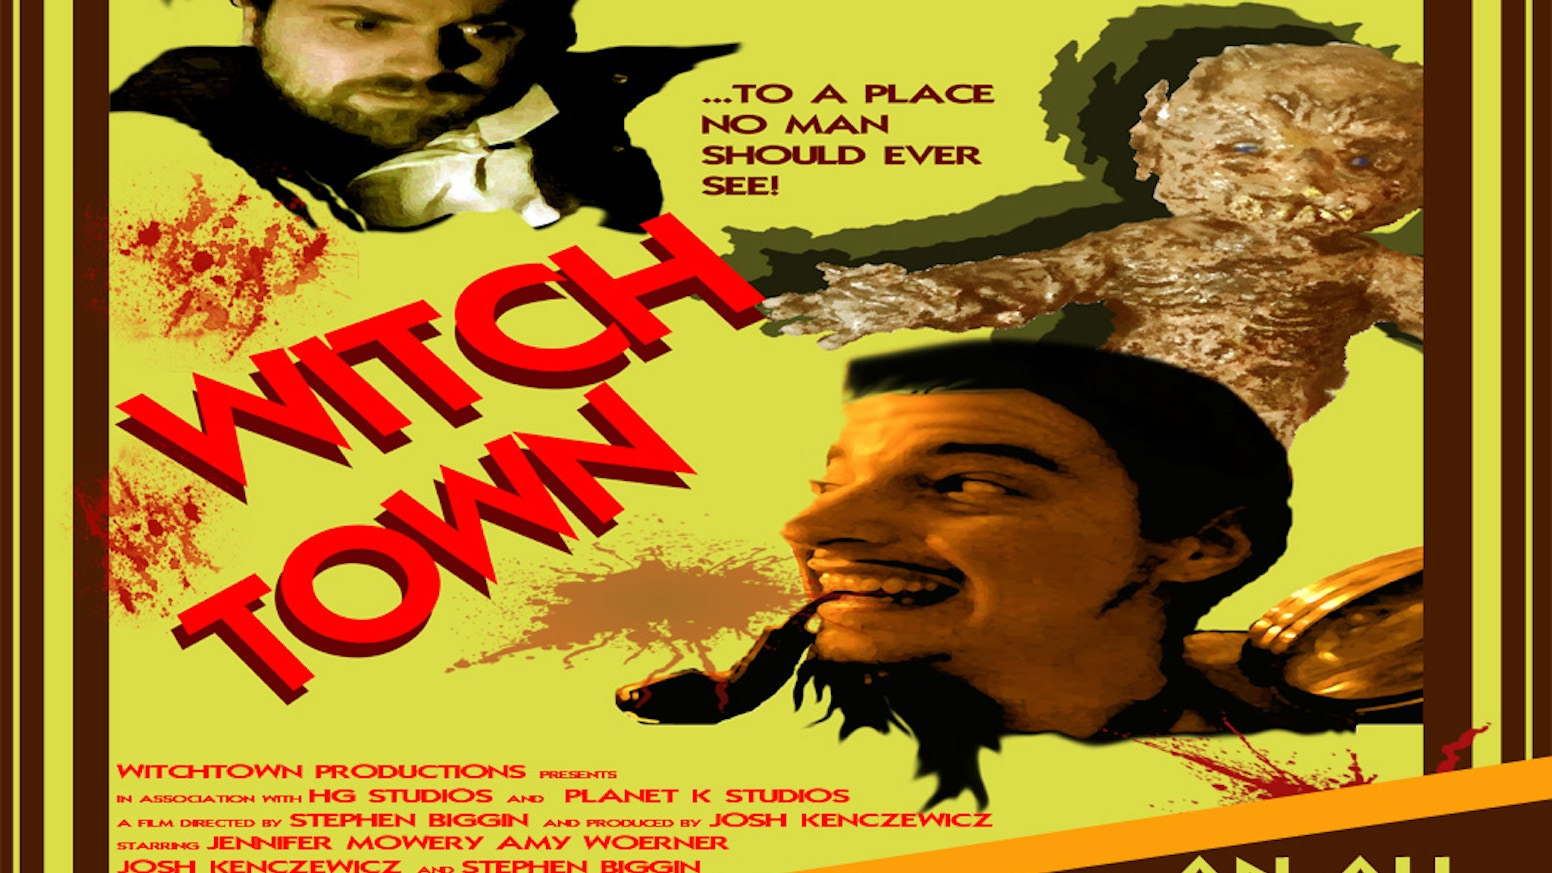 Hello! Our production company is in the process of creating a full length, fun horror film entitled WITCHTOWN.